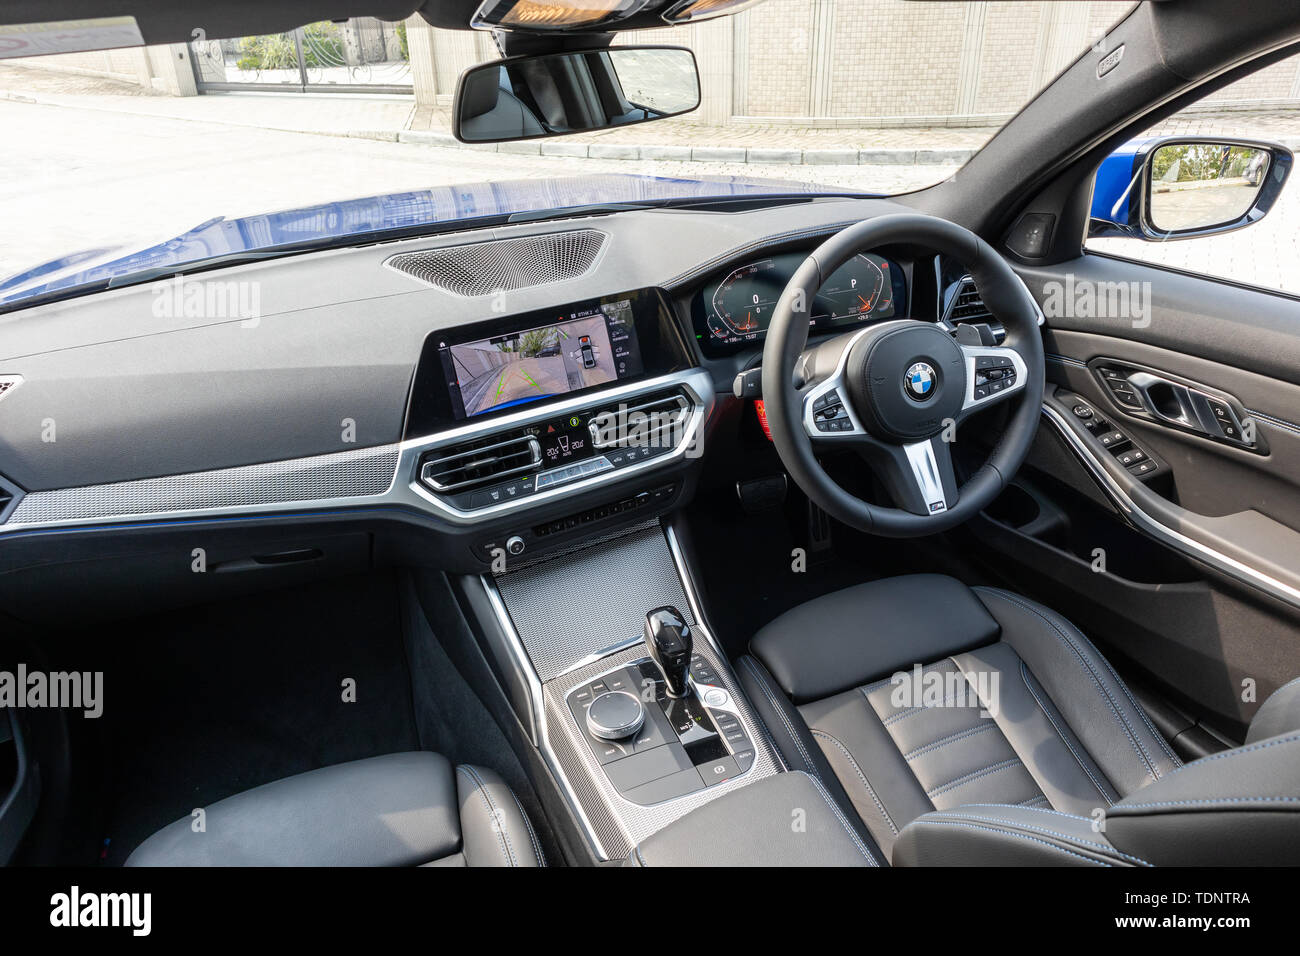 Bmw Serie 3 Interieur Banque D Image Et Photos Alamy